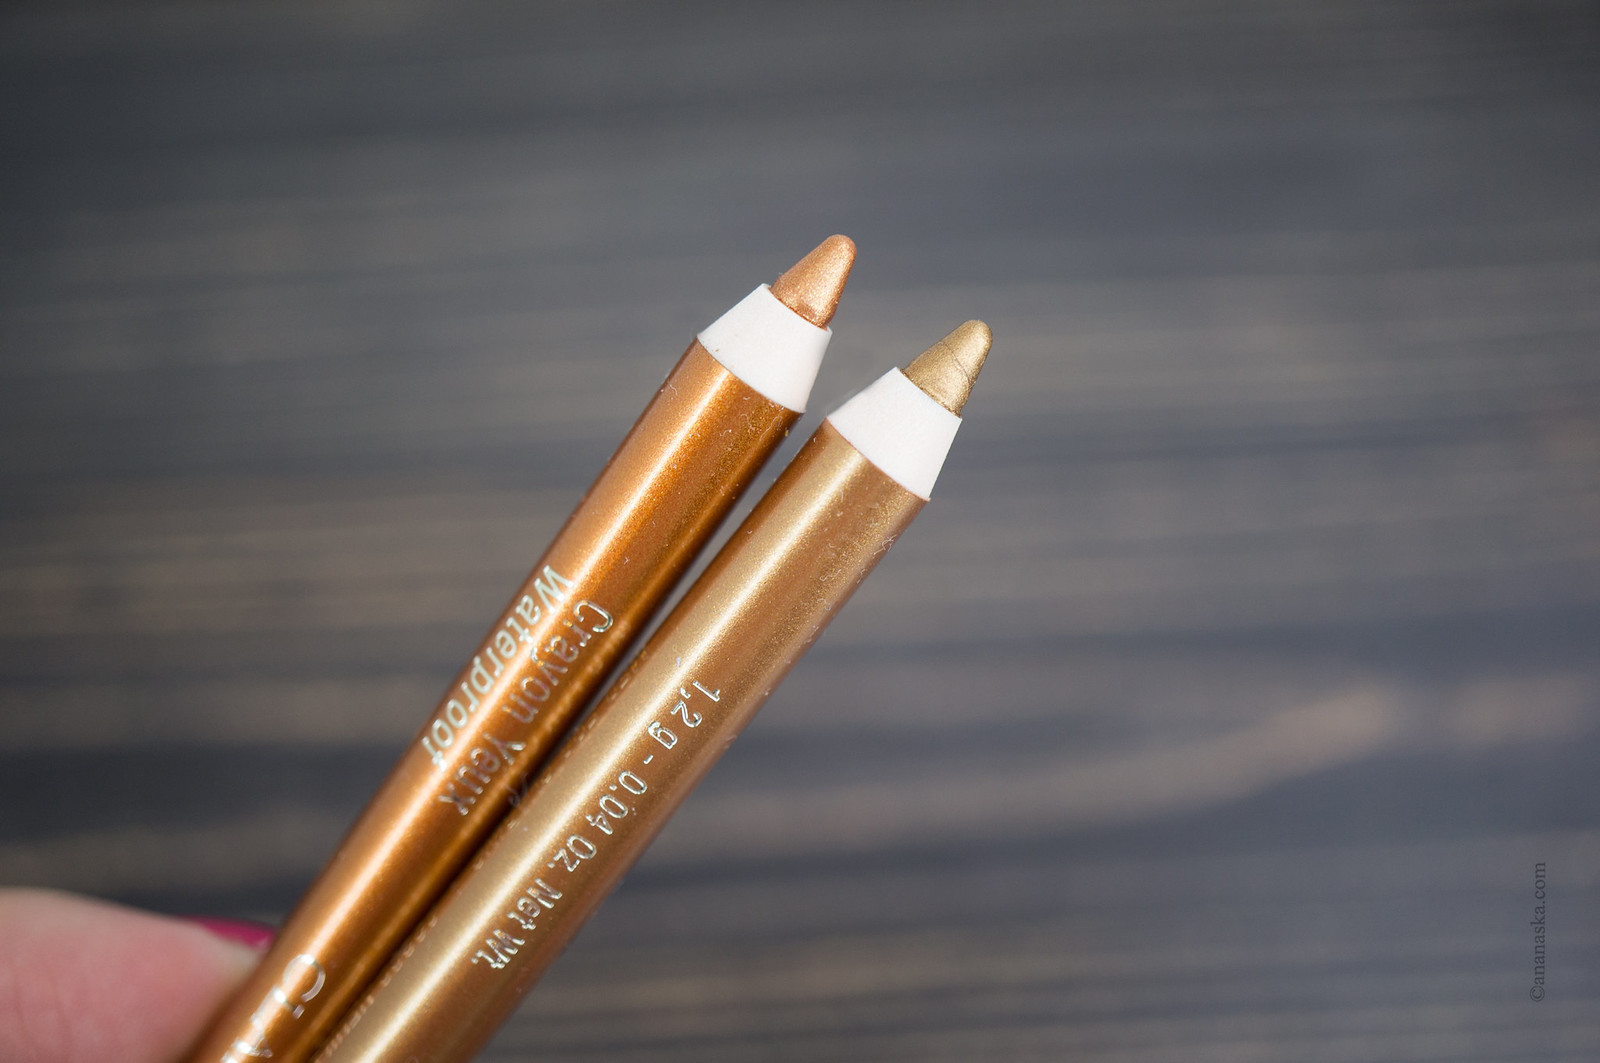 Clarins Crayon Yeux Waterproof: 06 gold, 07 copper